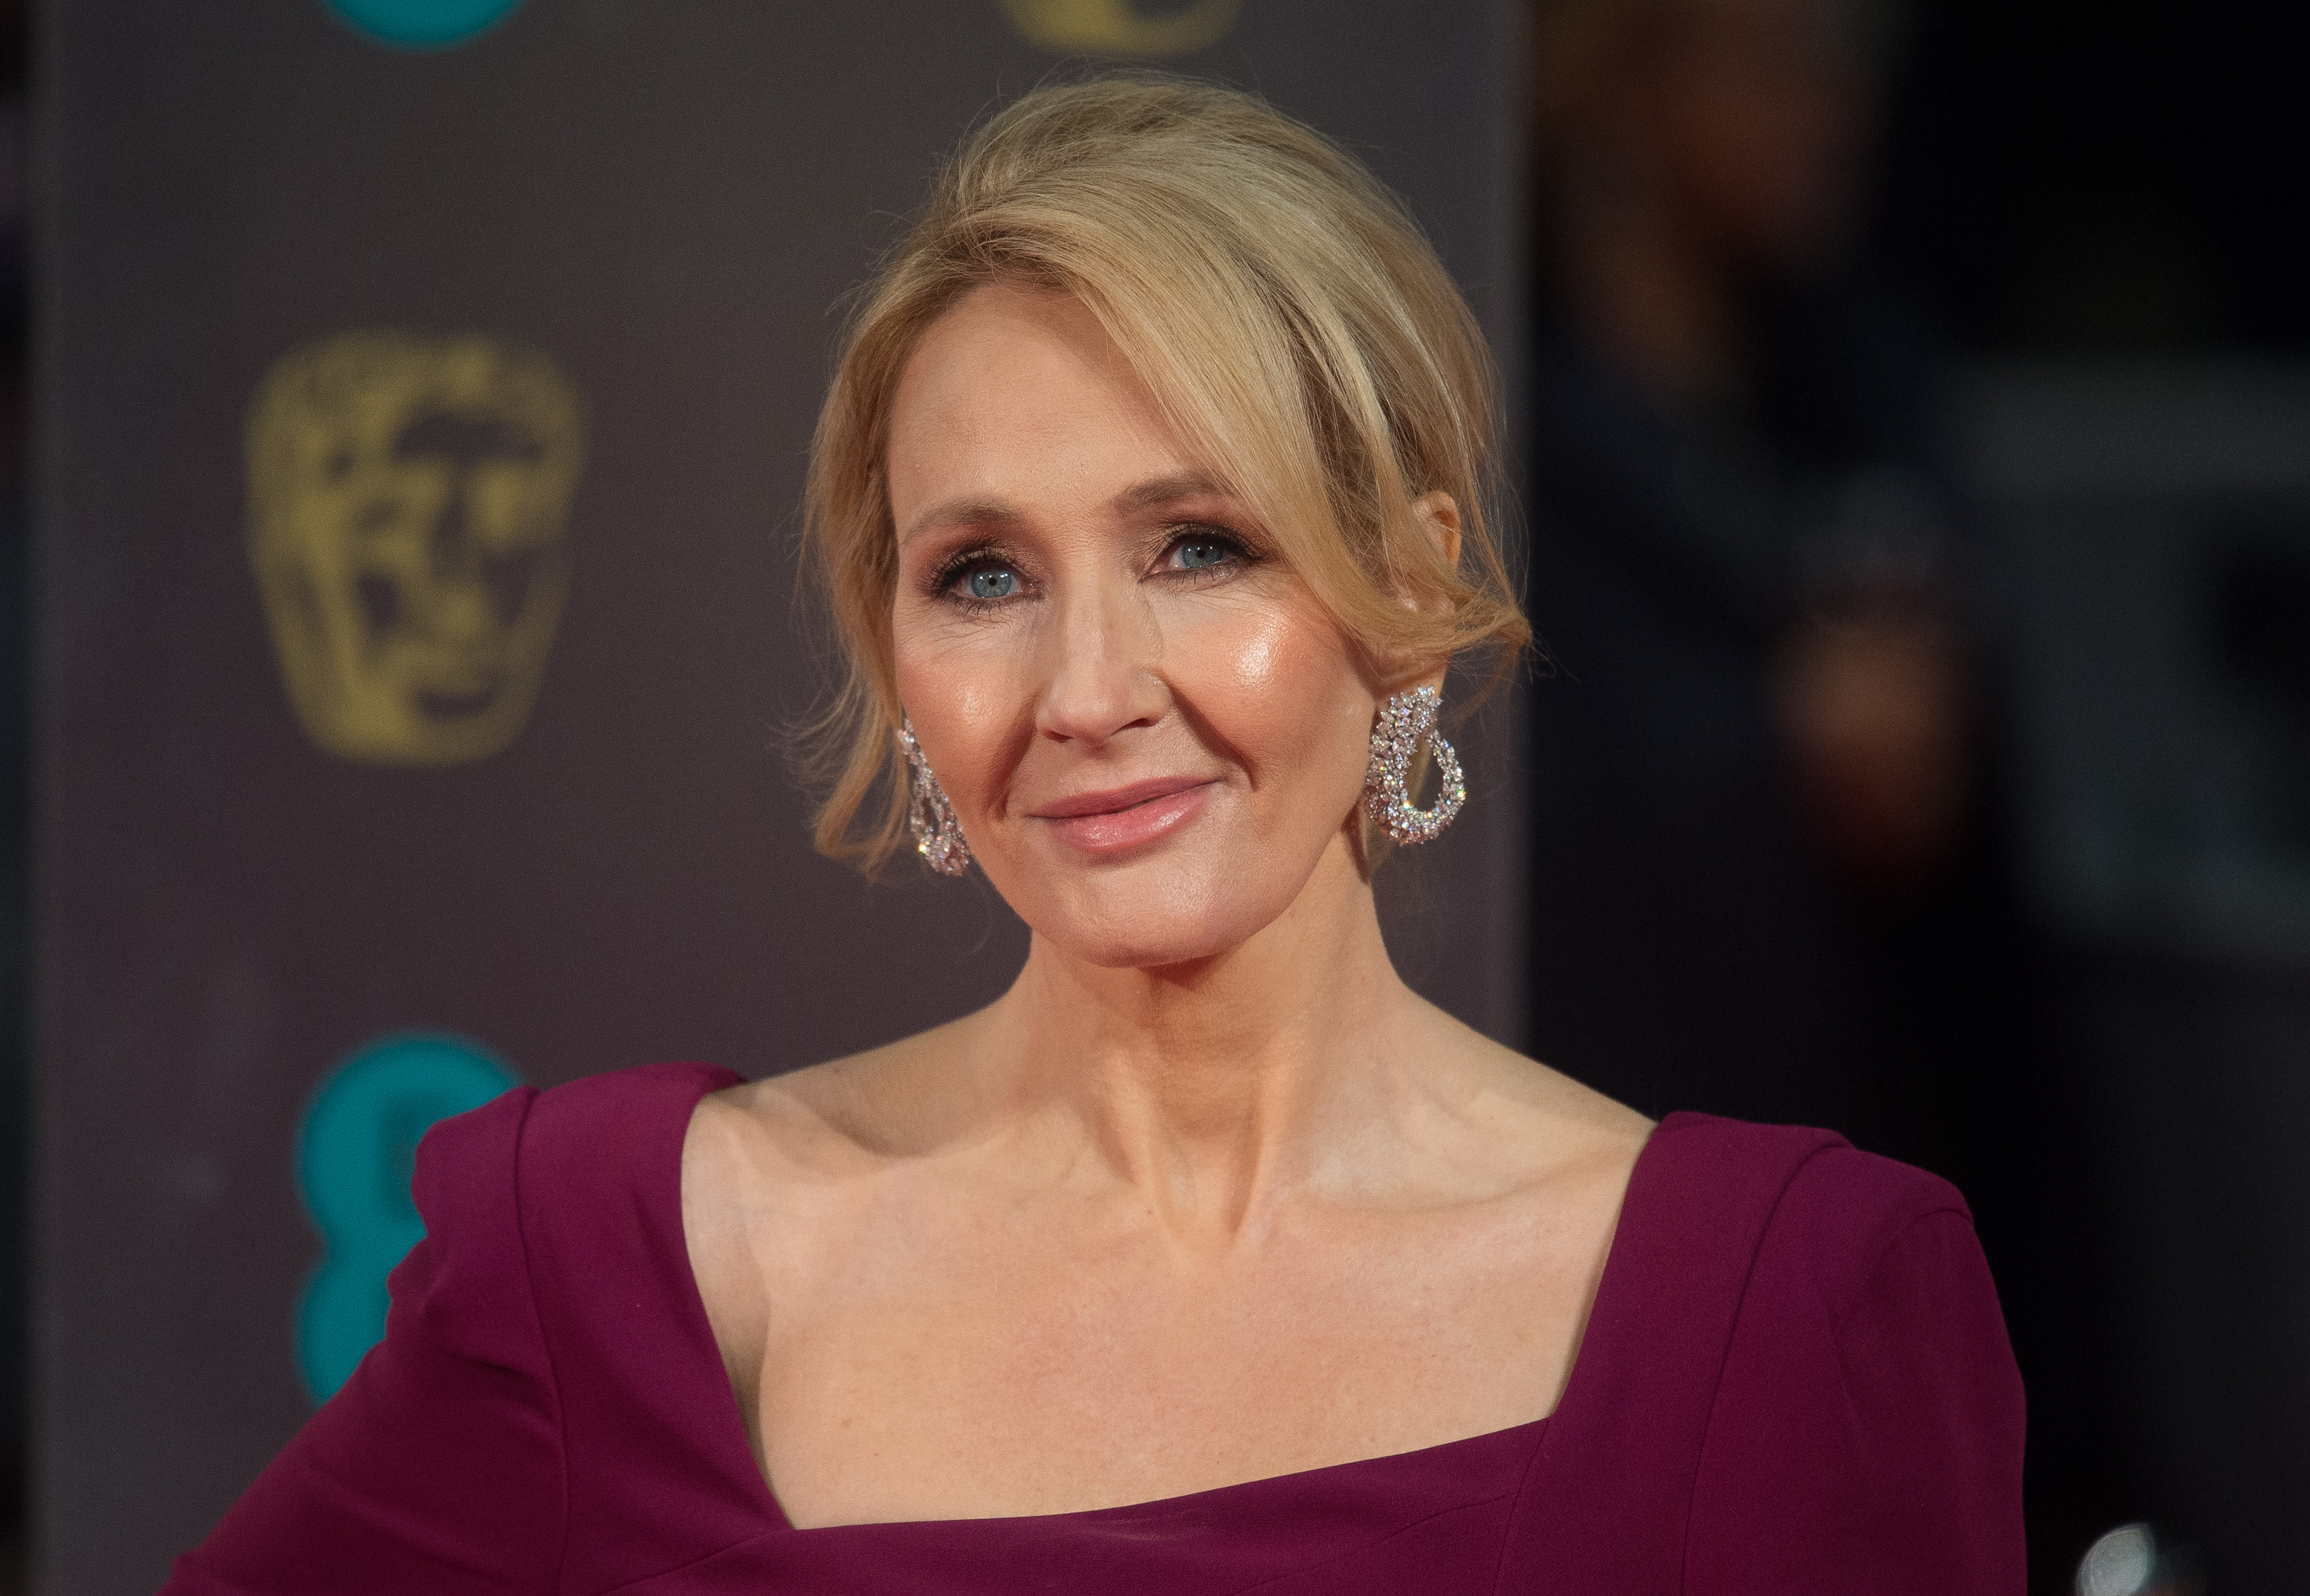 J.K. Rowling tweeted this moving and personal message to a fan struggling with depression, and we love her more than ever